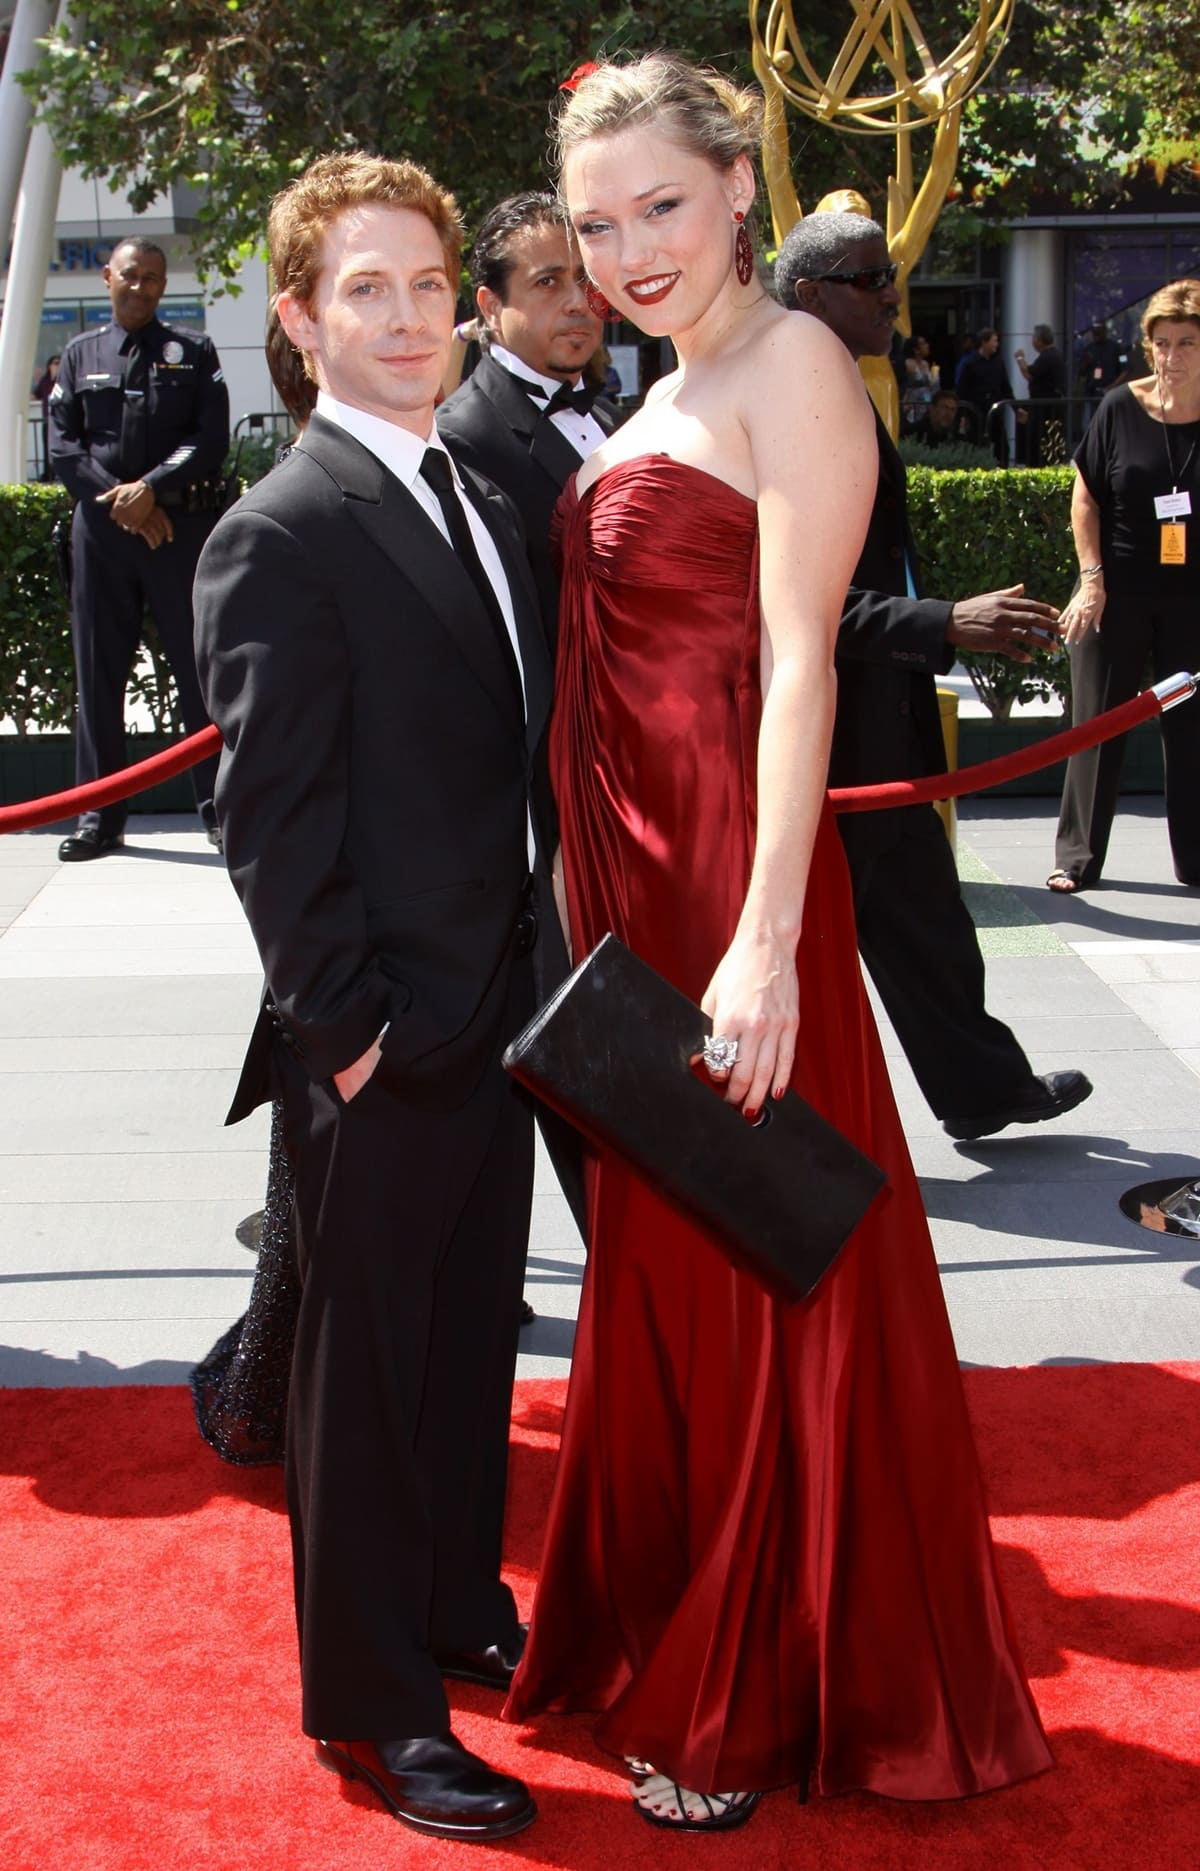 Seth Green and Clare Grant at the 61st Primetime Emmy Awards